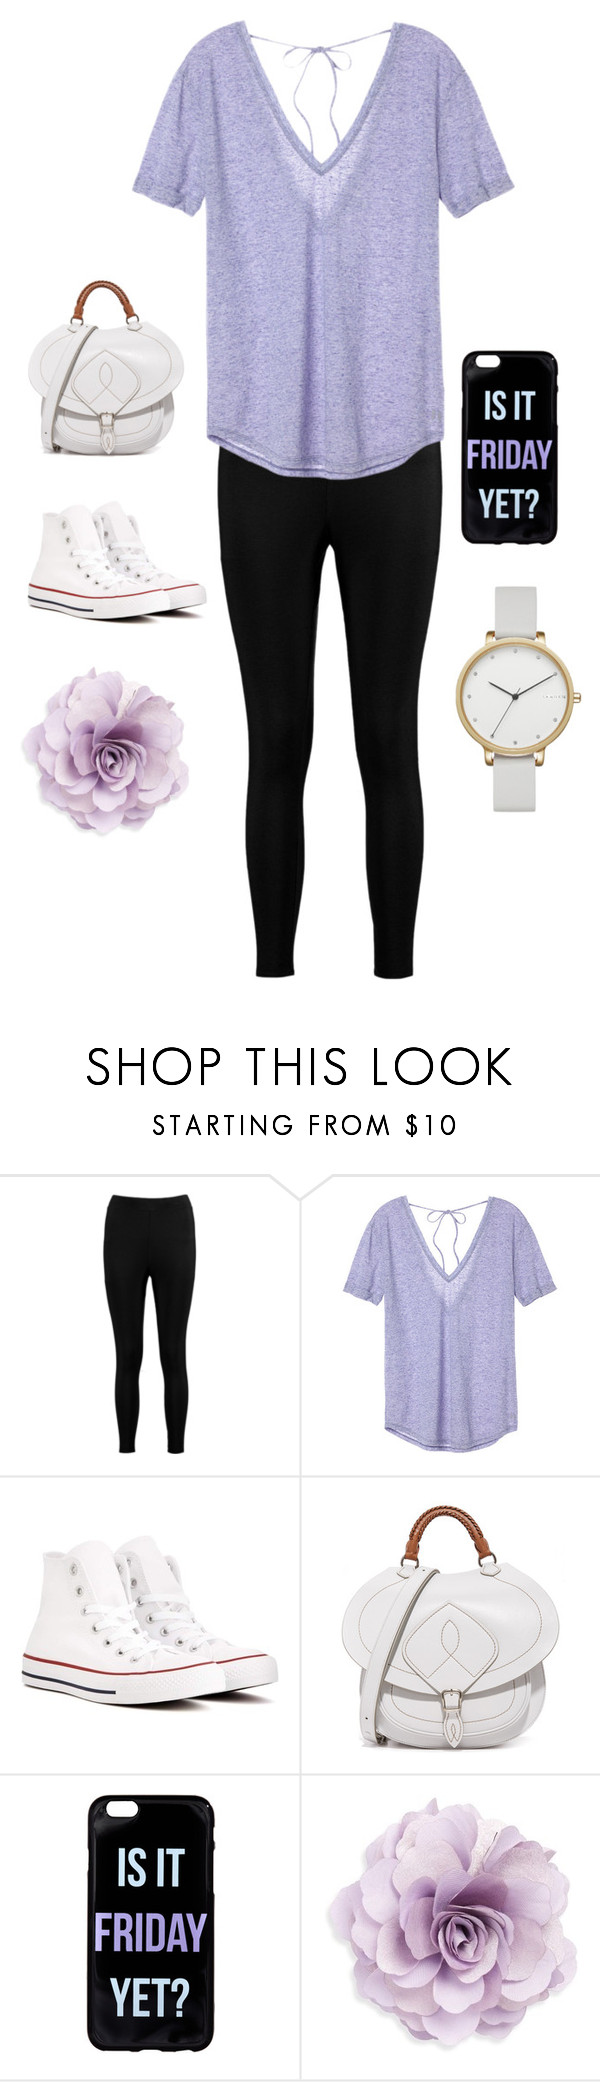 """""""💟💟"""" by mahaahsan ❤ liked on Polyvore featuring Boohoo, Victoria's Secret, Converse, Maison Margiela, Cara and Skagen"""